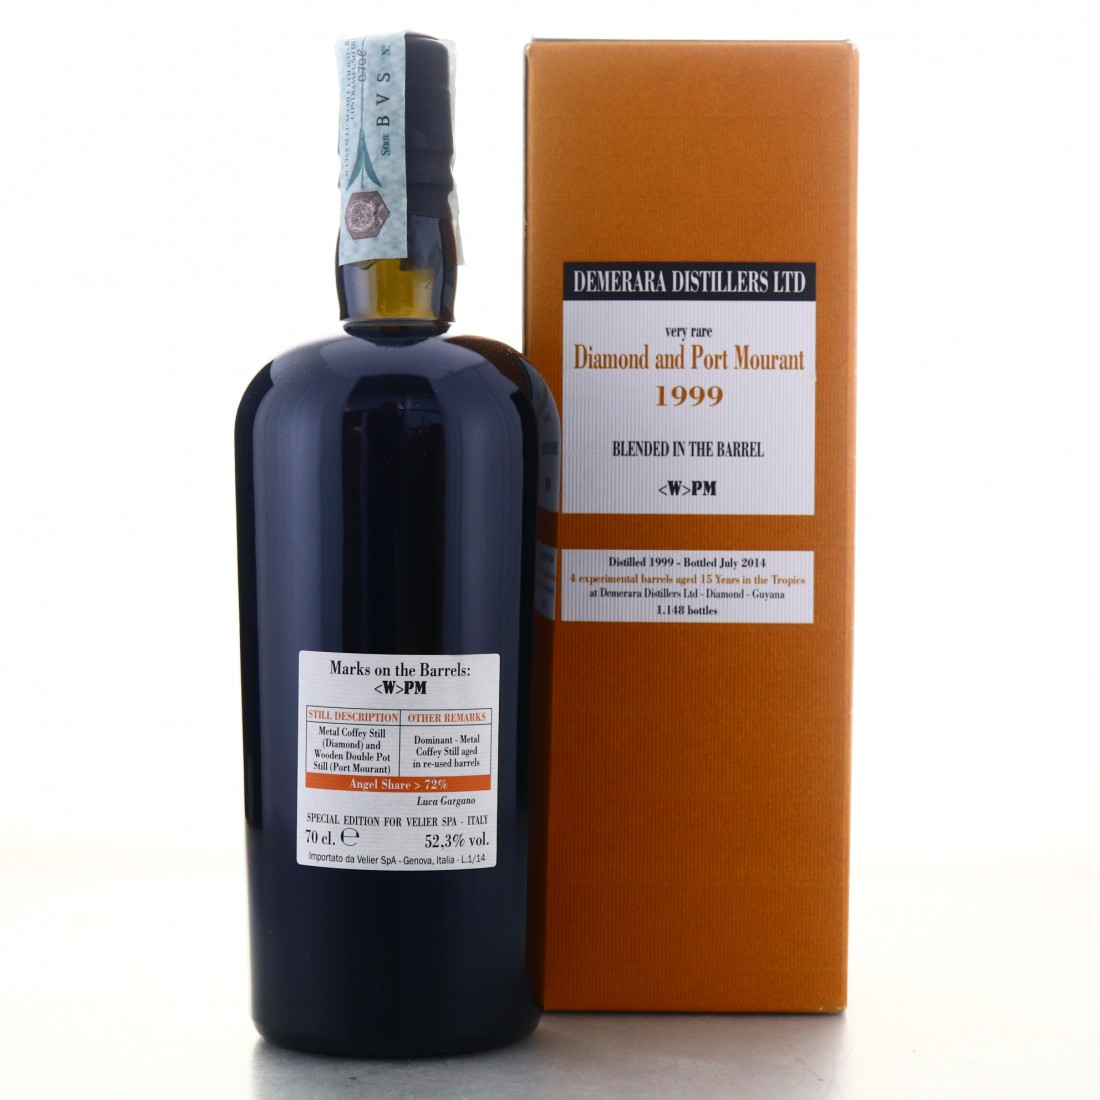 Diamond and Port Mourant <W>PM 1999 Velier 15 Year Old Blended in the Barrel